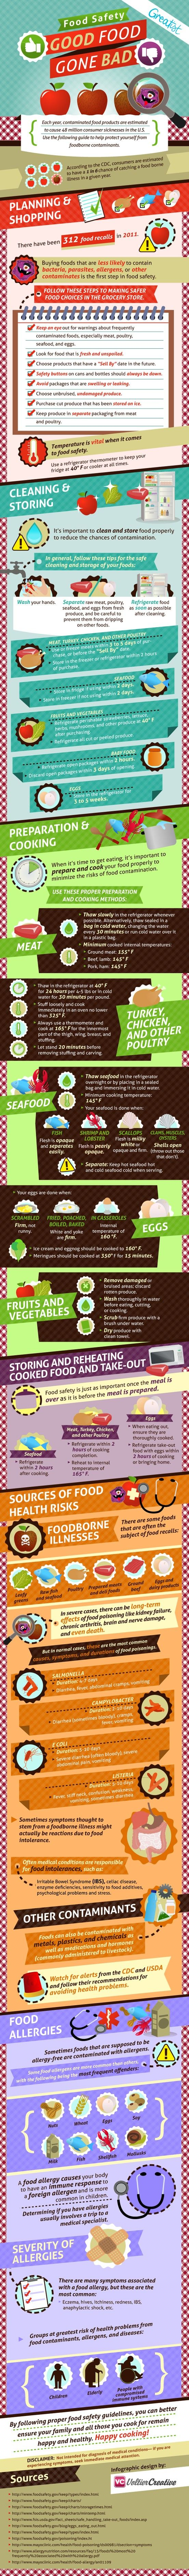 best ideas about food safety culinary arts your guide to food safety infographic